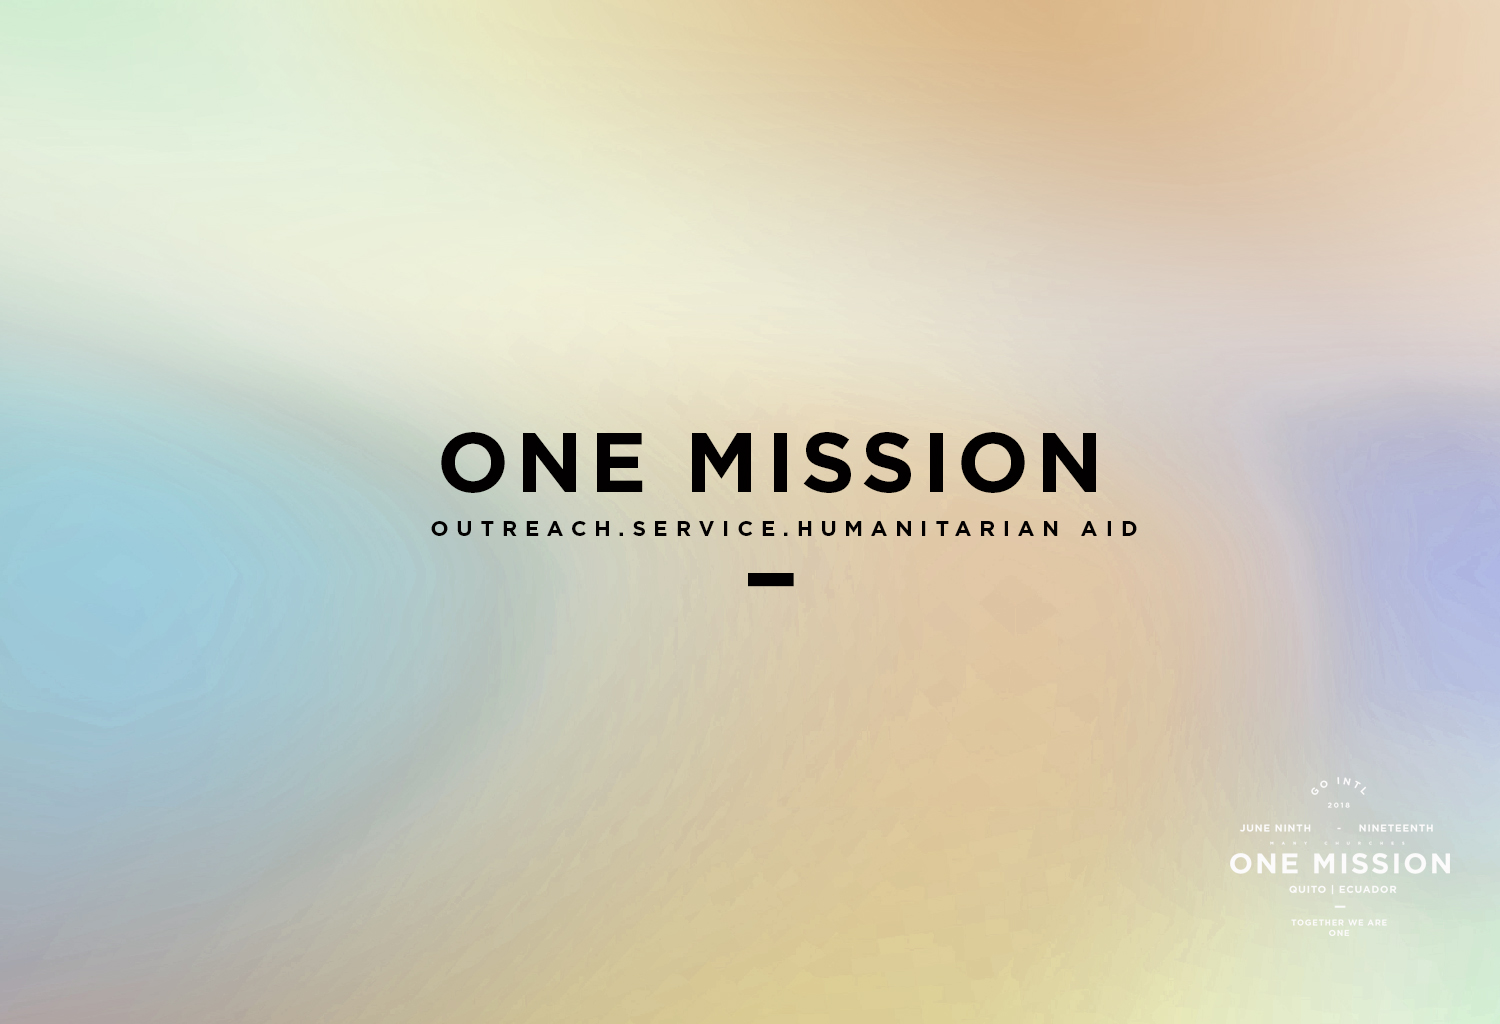 one-OUTREACH-mission-banner-6.jpg